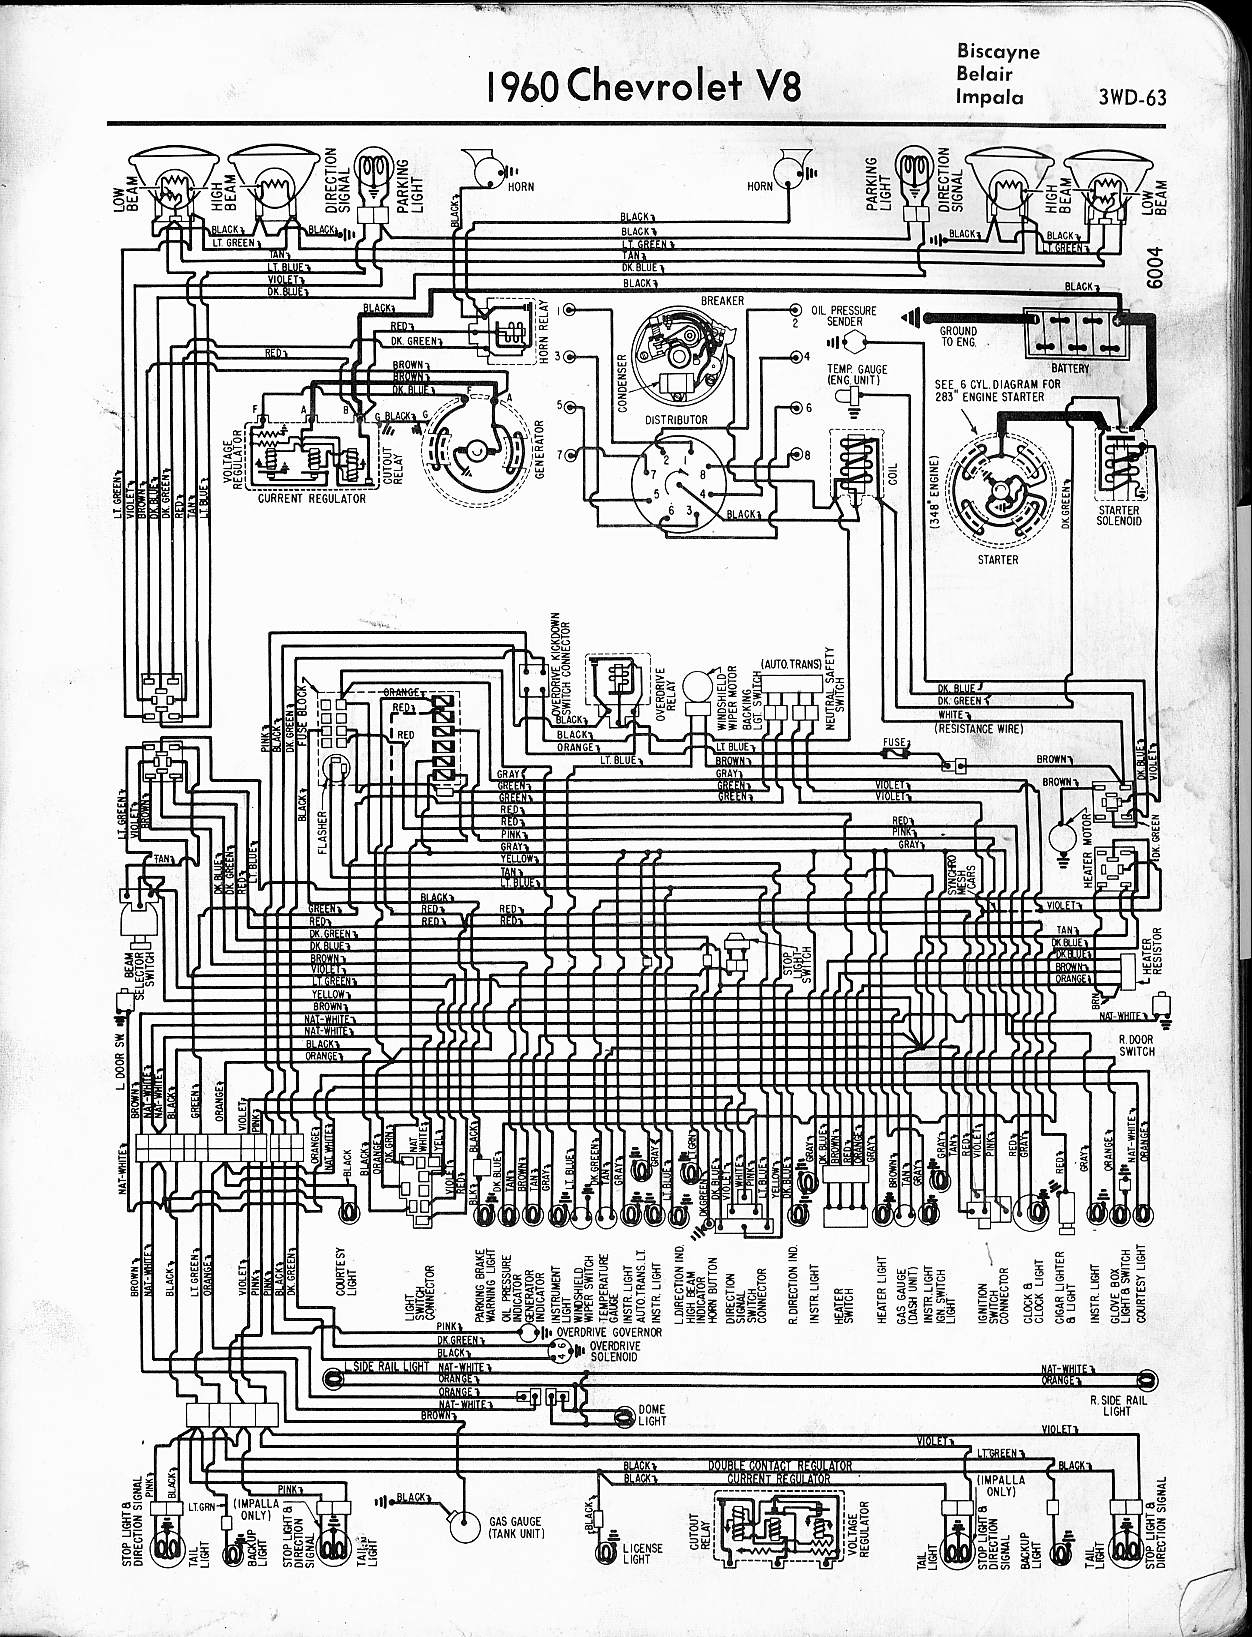 hight resolution of international truck wiring diagram schematic 1960 v8 biscayne belair impala 8a